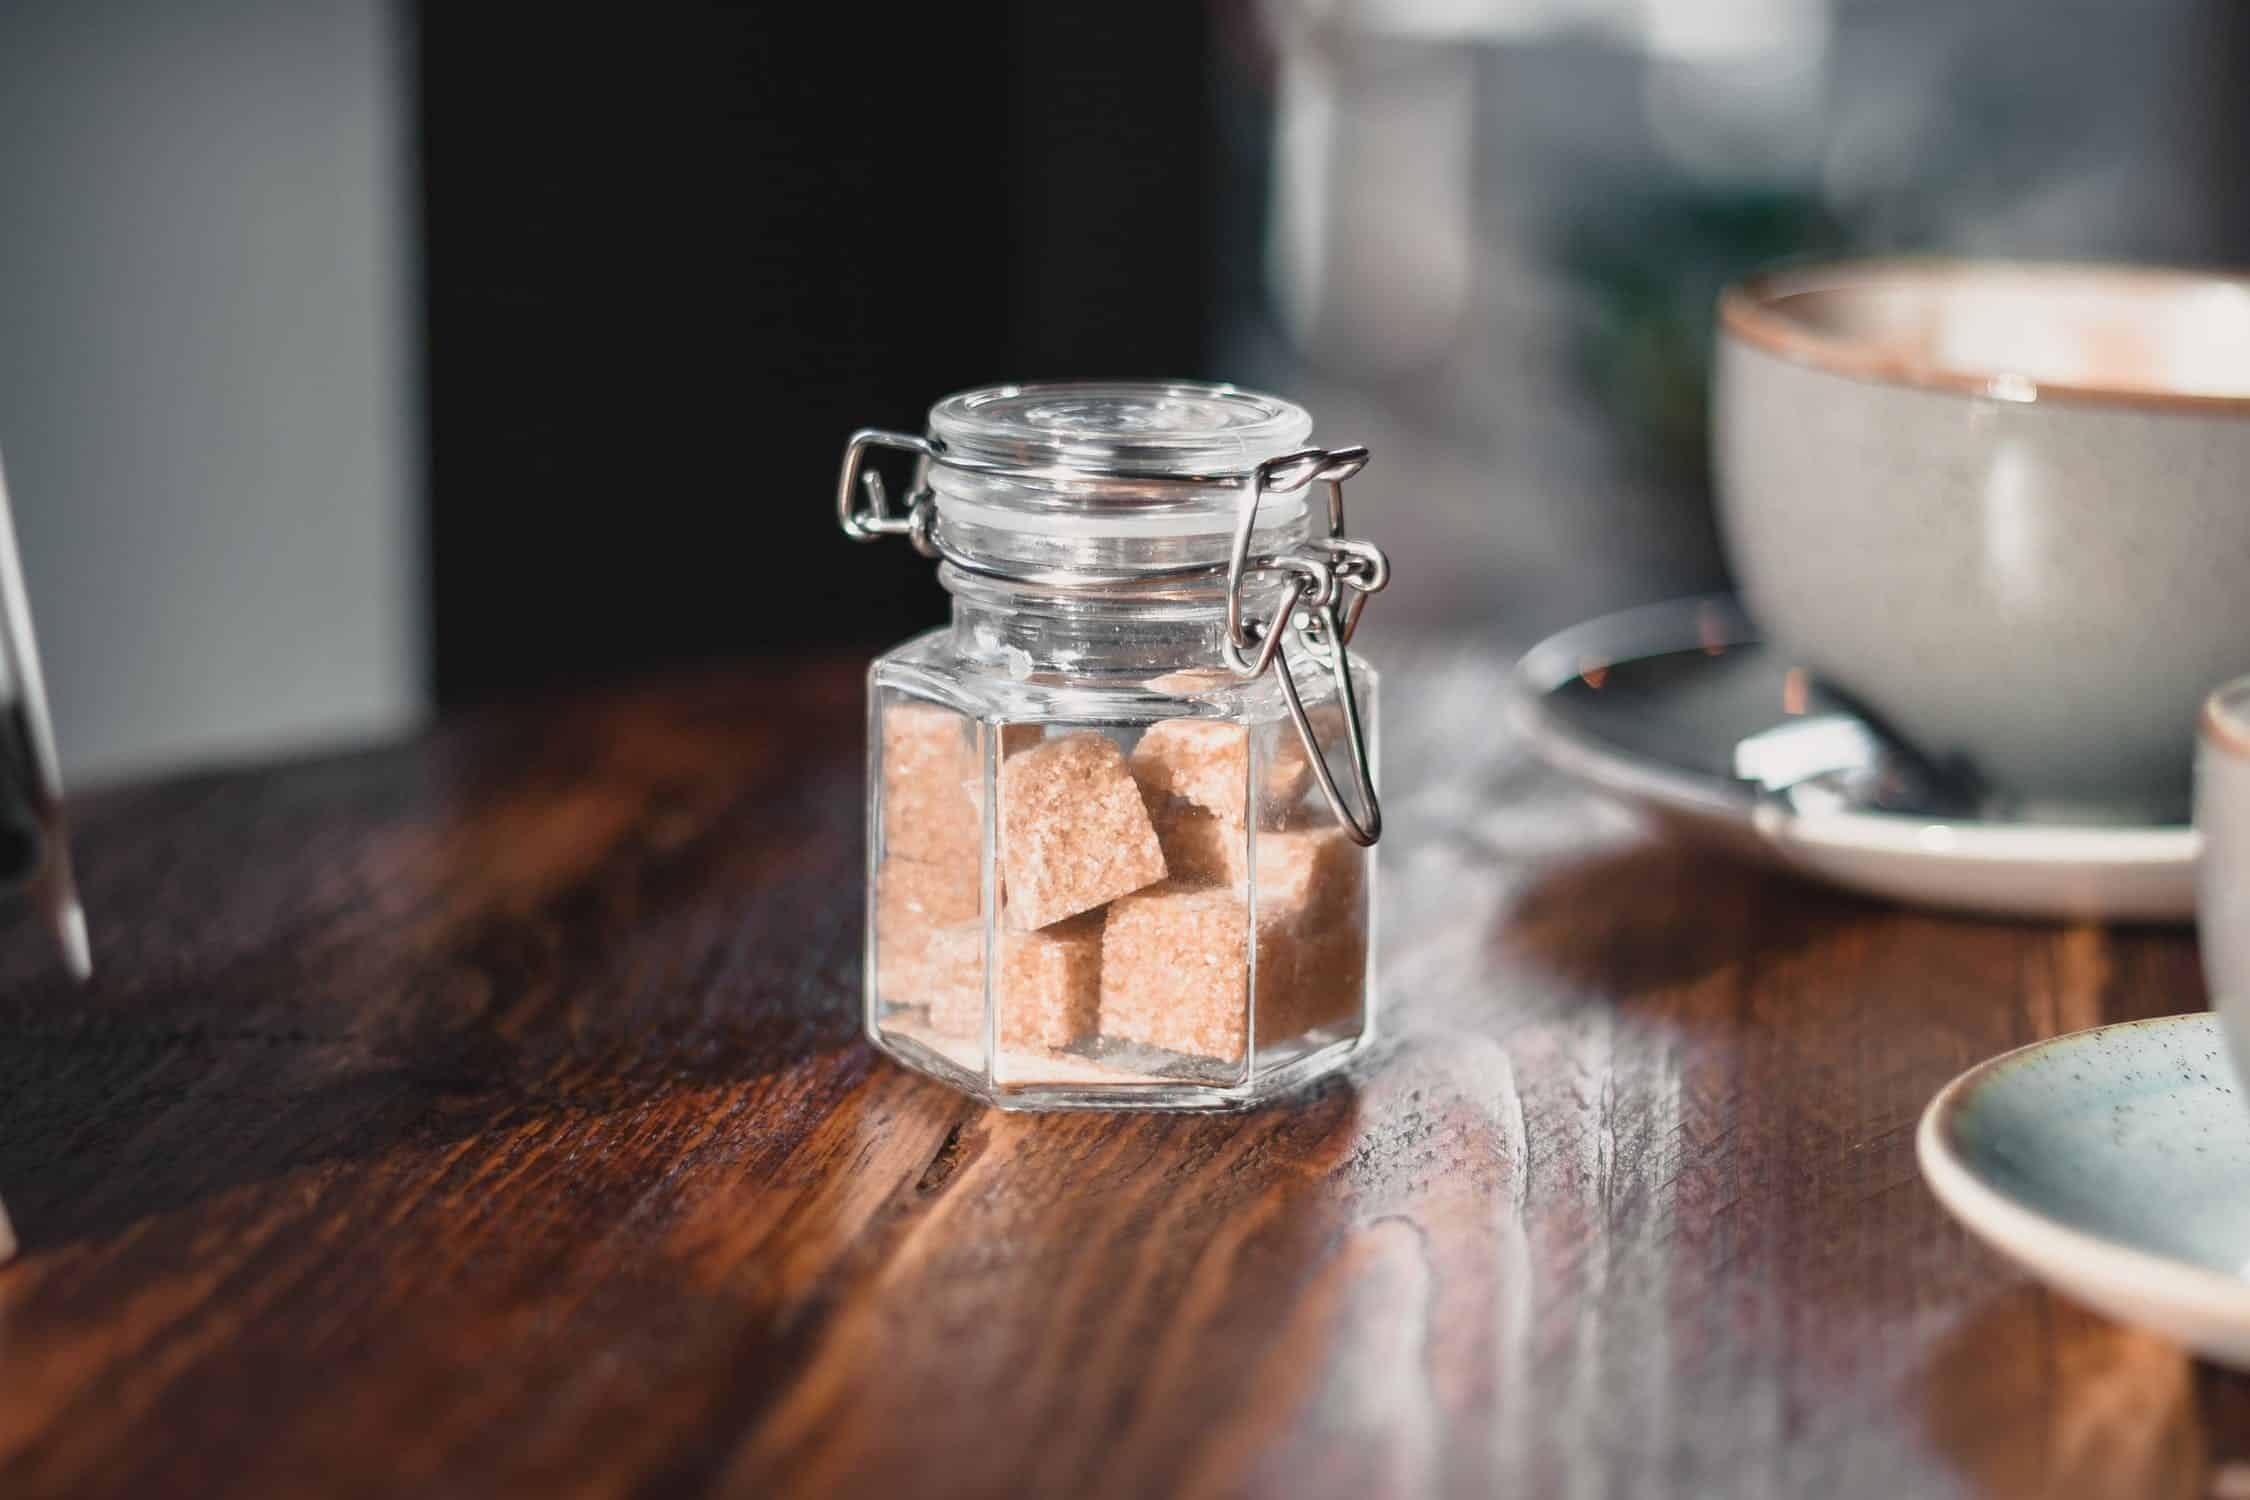 Brown sugar cubs in a small kilner jar on a table